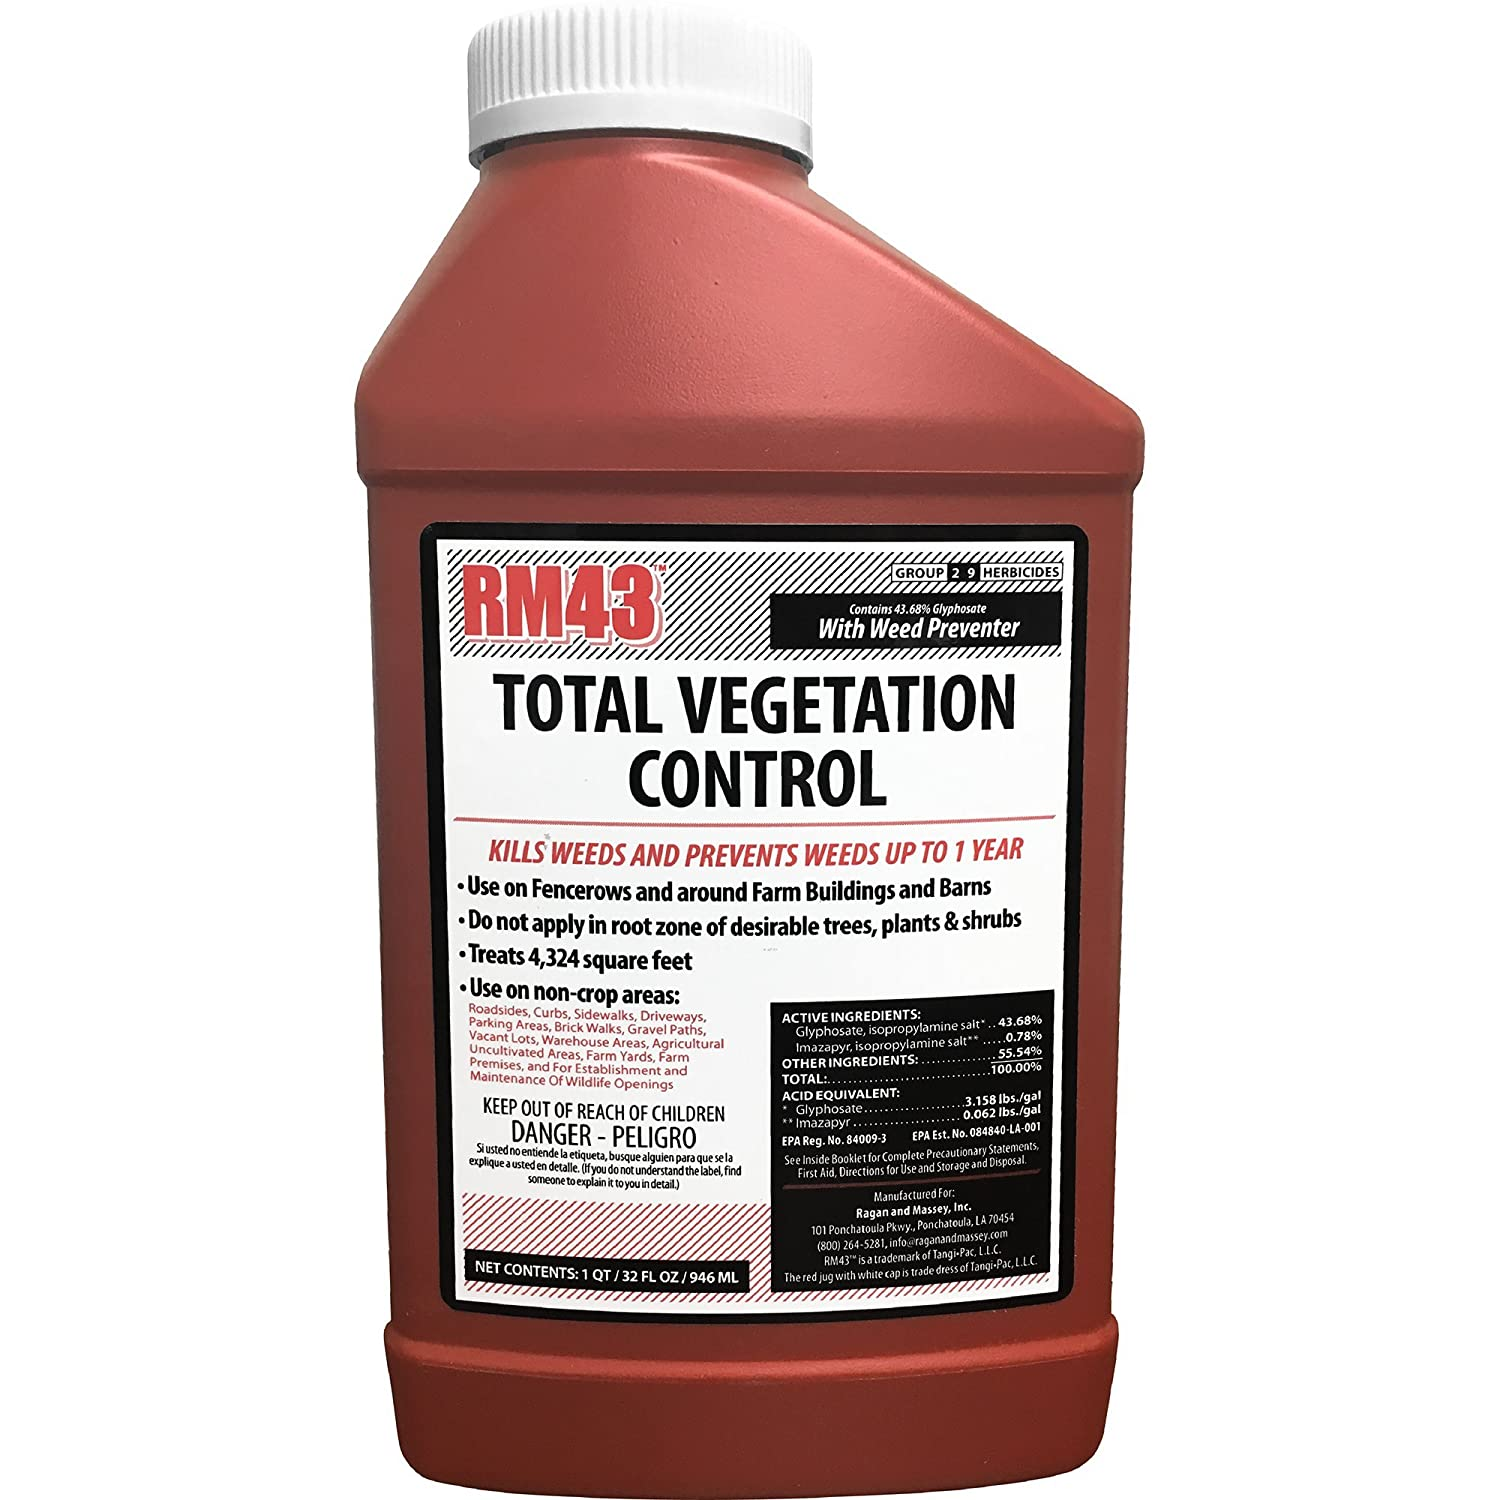 RM43 43-Percent Glyphosate Plus Weed Preventer